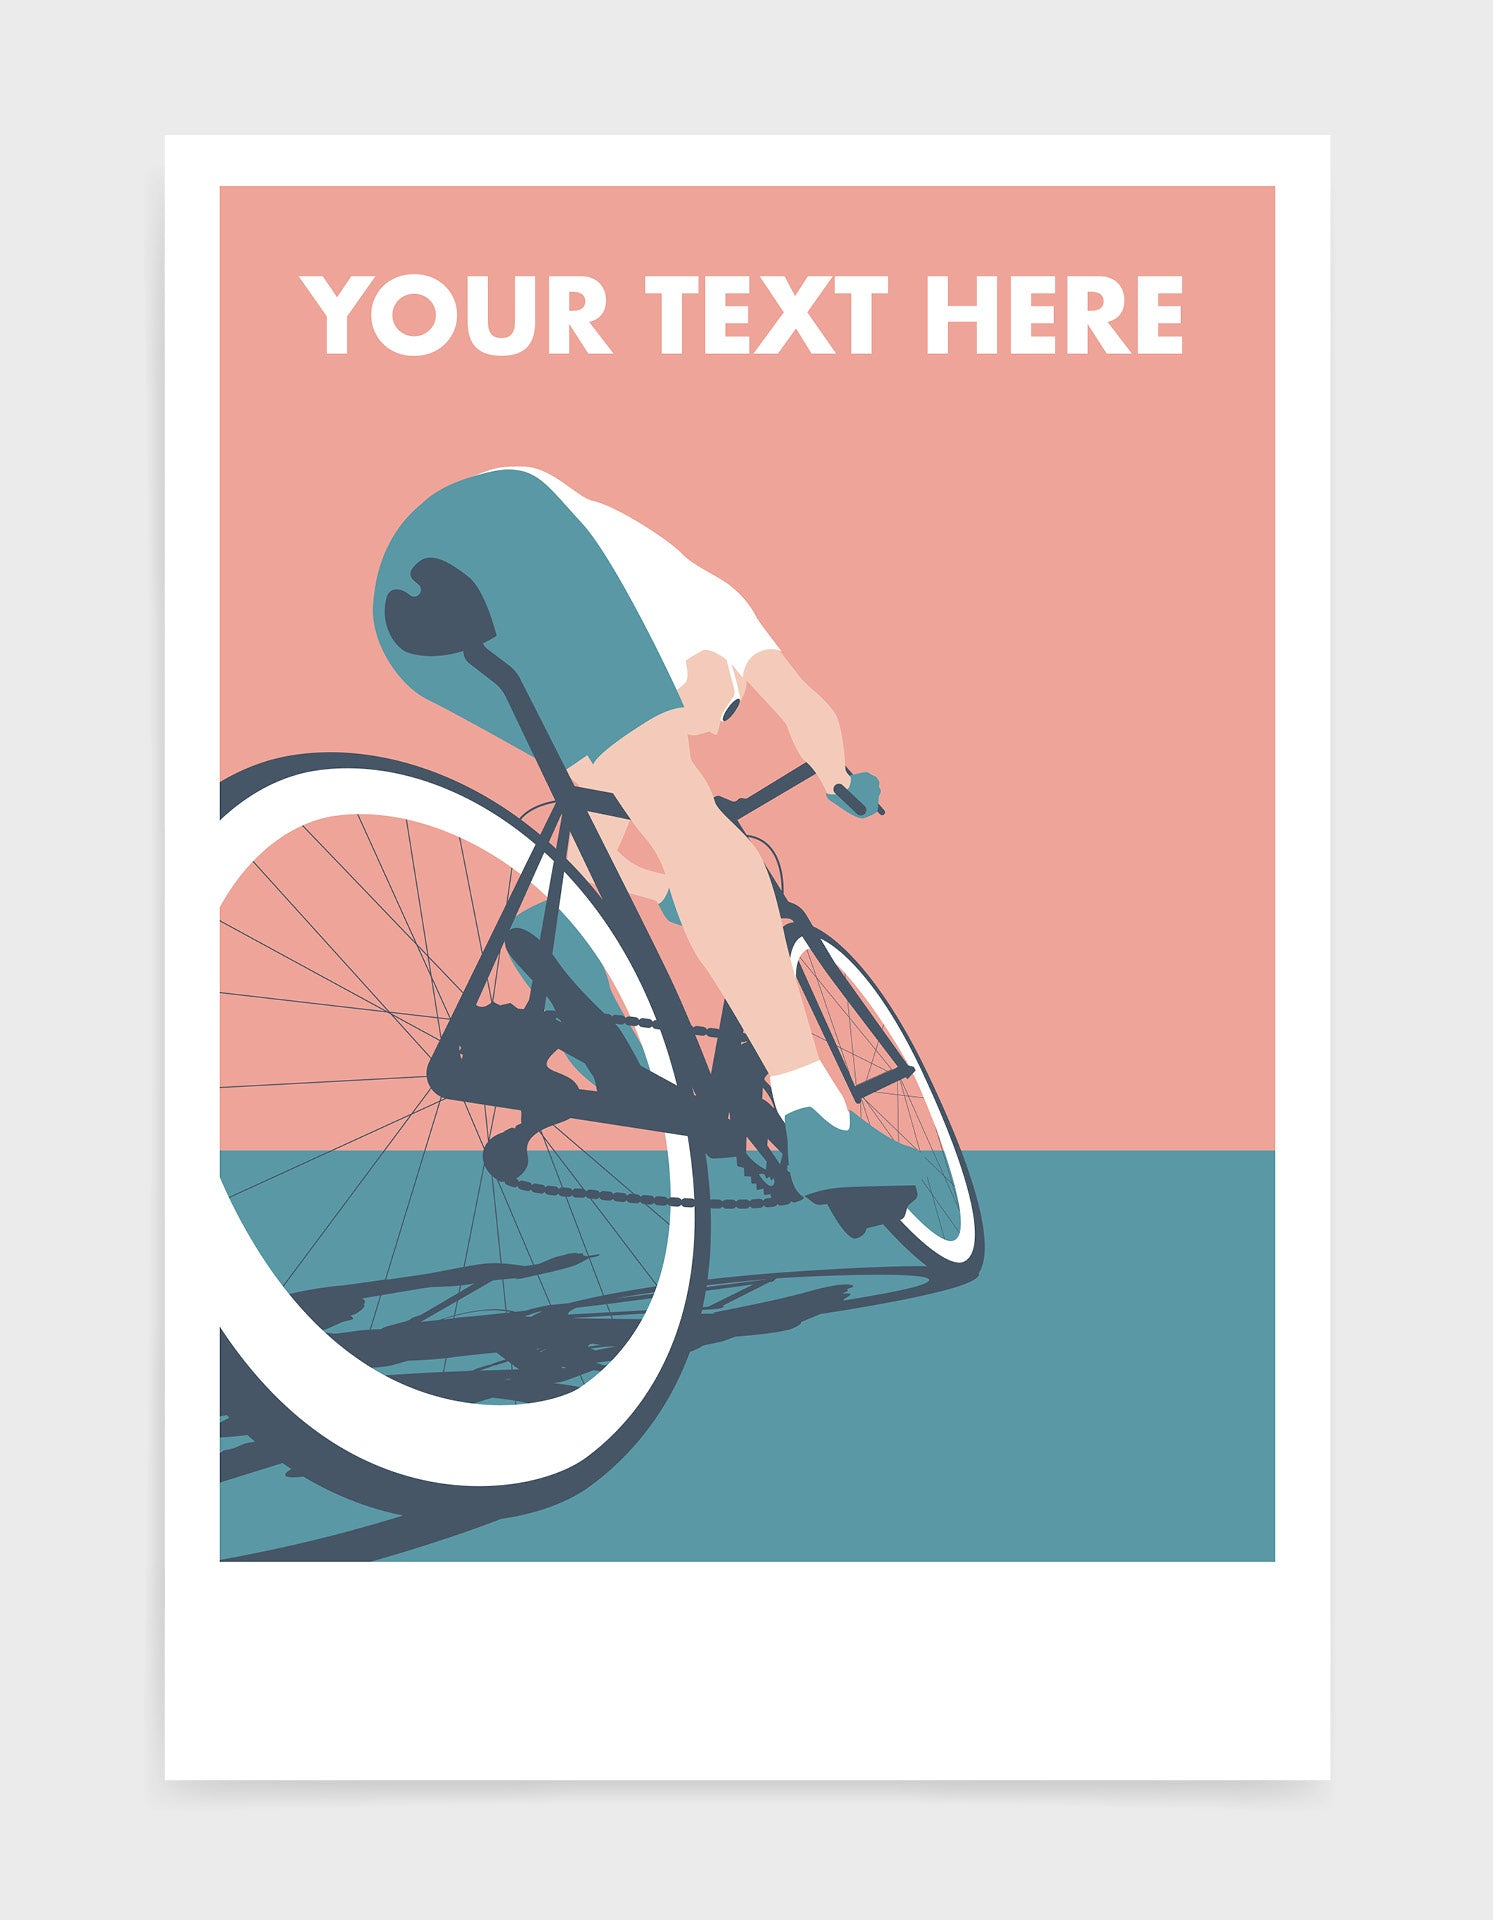 mid-century modern style cycling art print depicting a cyclist in pink and blue tones